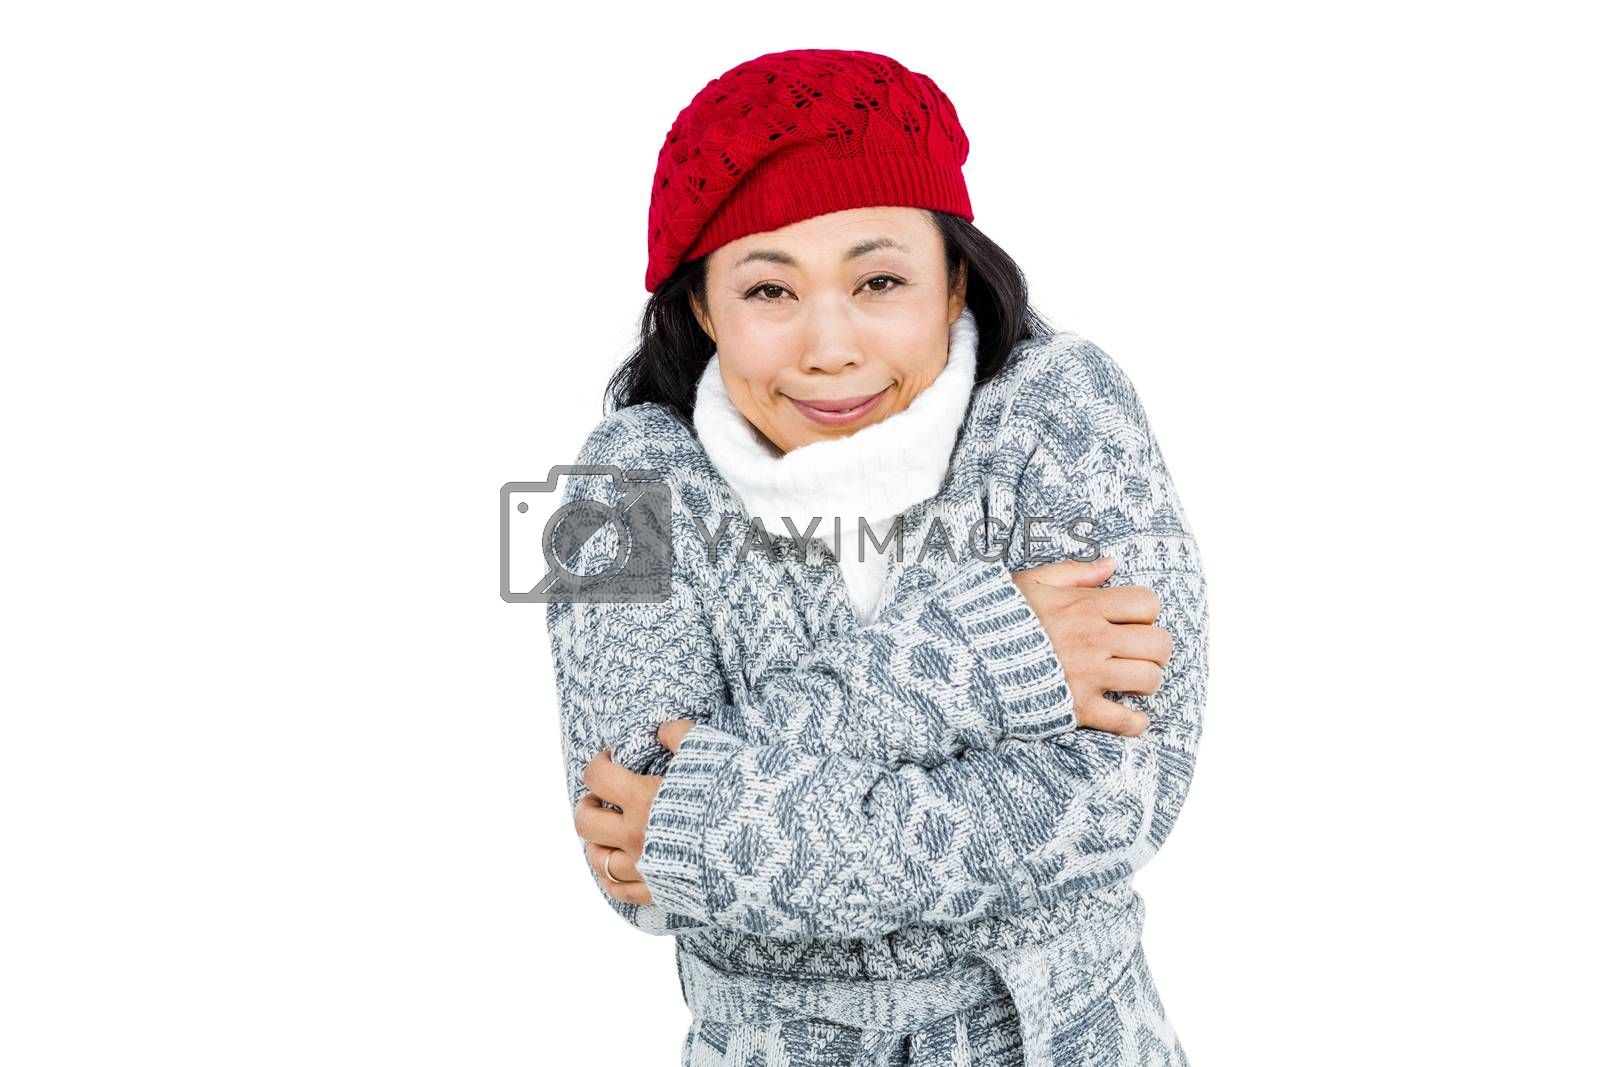 Portrait of woman in cold weather against white background